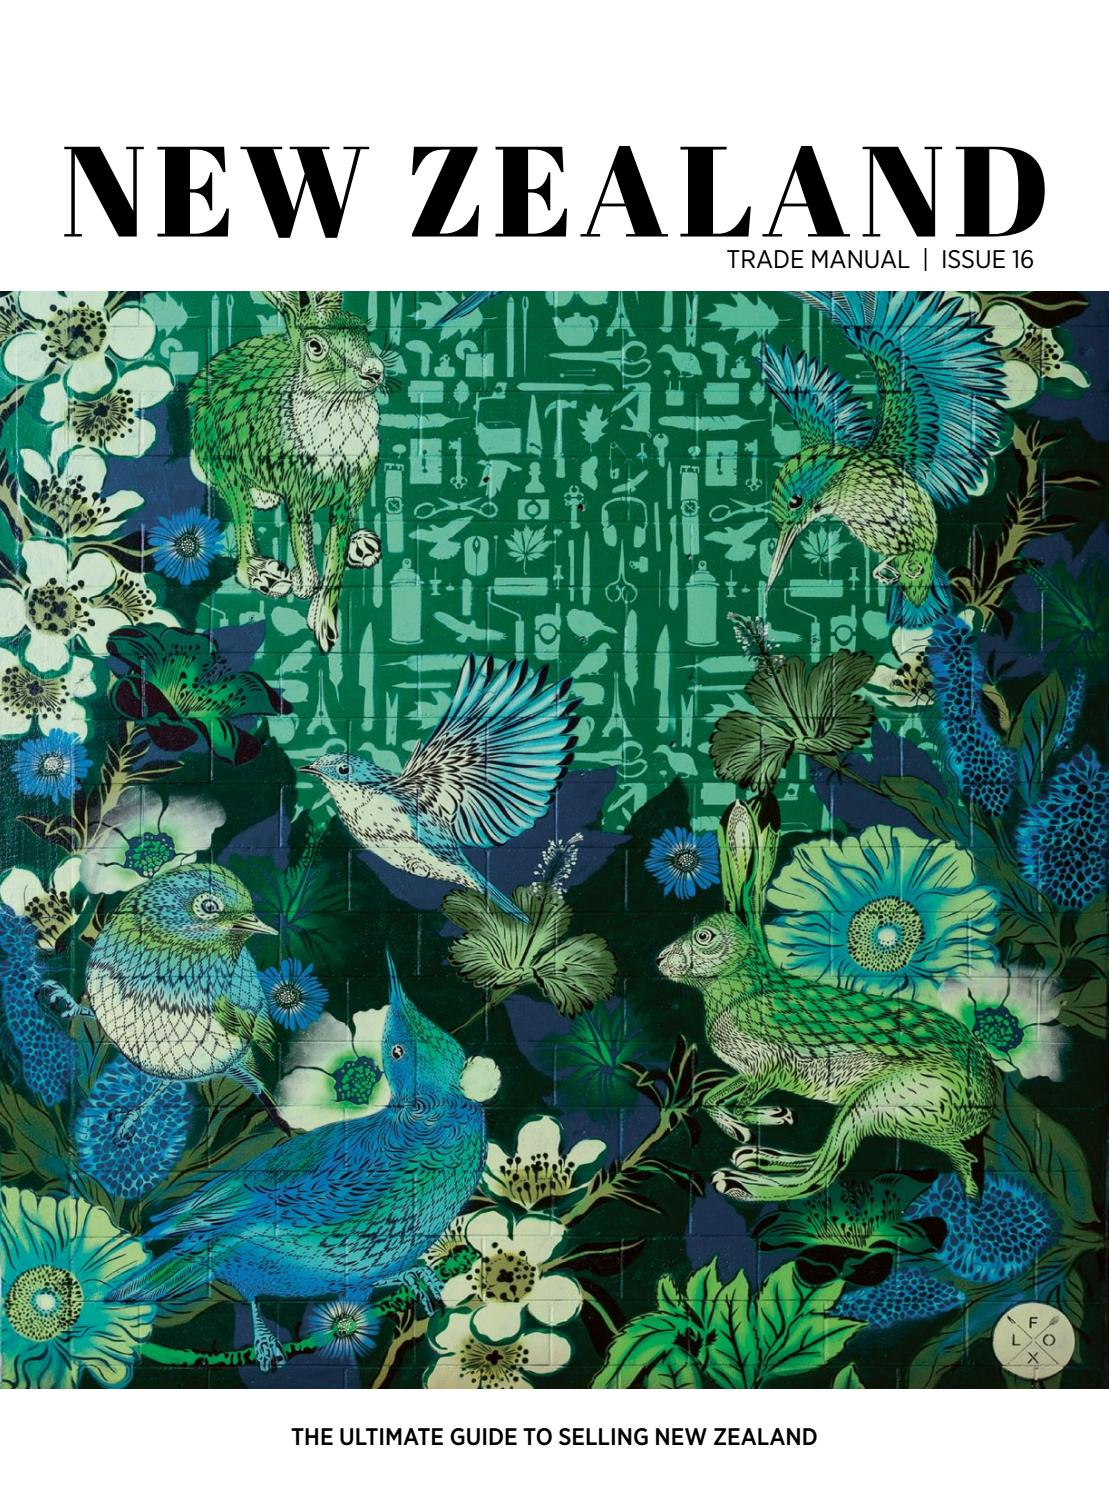 New Zealand Trade Manual - Issue 16 by SOMO Creative - issuu